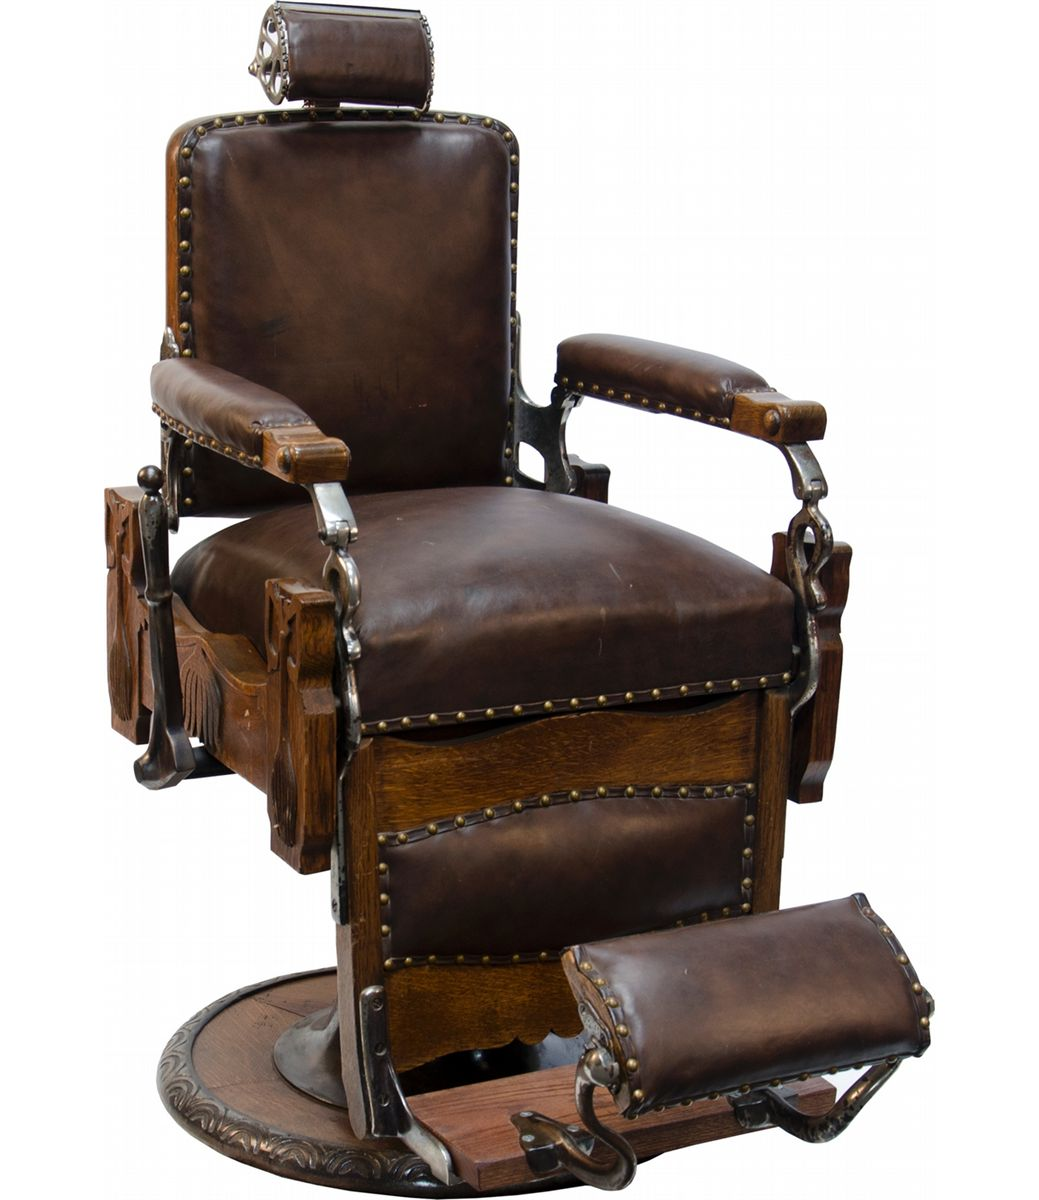 Old Barber Chairs >> Koken Congress Vintage Pedestal Barber Chair